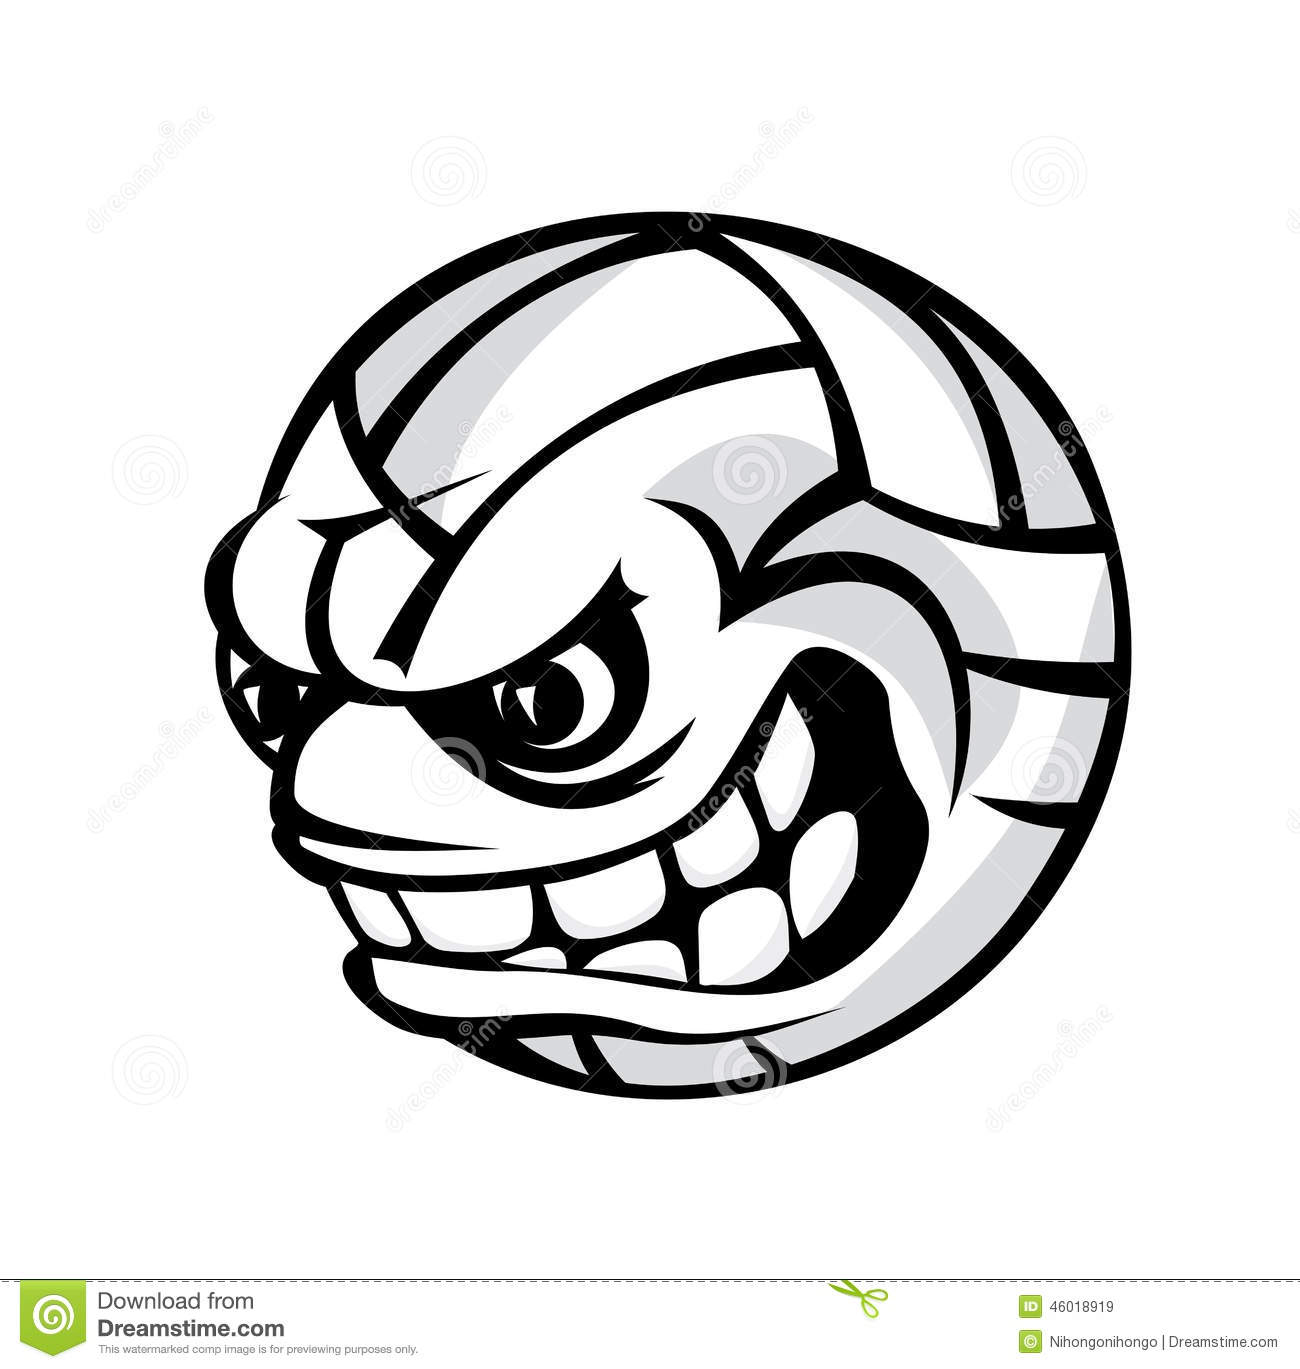 Printable Locker Signs For Volleyball additionally Vector Of A Cartoon Baseball Catcher Outlined Coloring Page By Ron Leishman 21916 additionally 14251 also Paint Brush Vector Image likewise Stock Illustration Volleyball   Ball Icon Beach. on volleyball graphic design